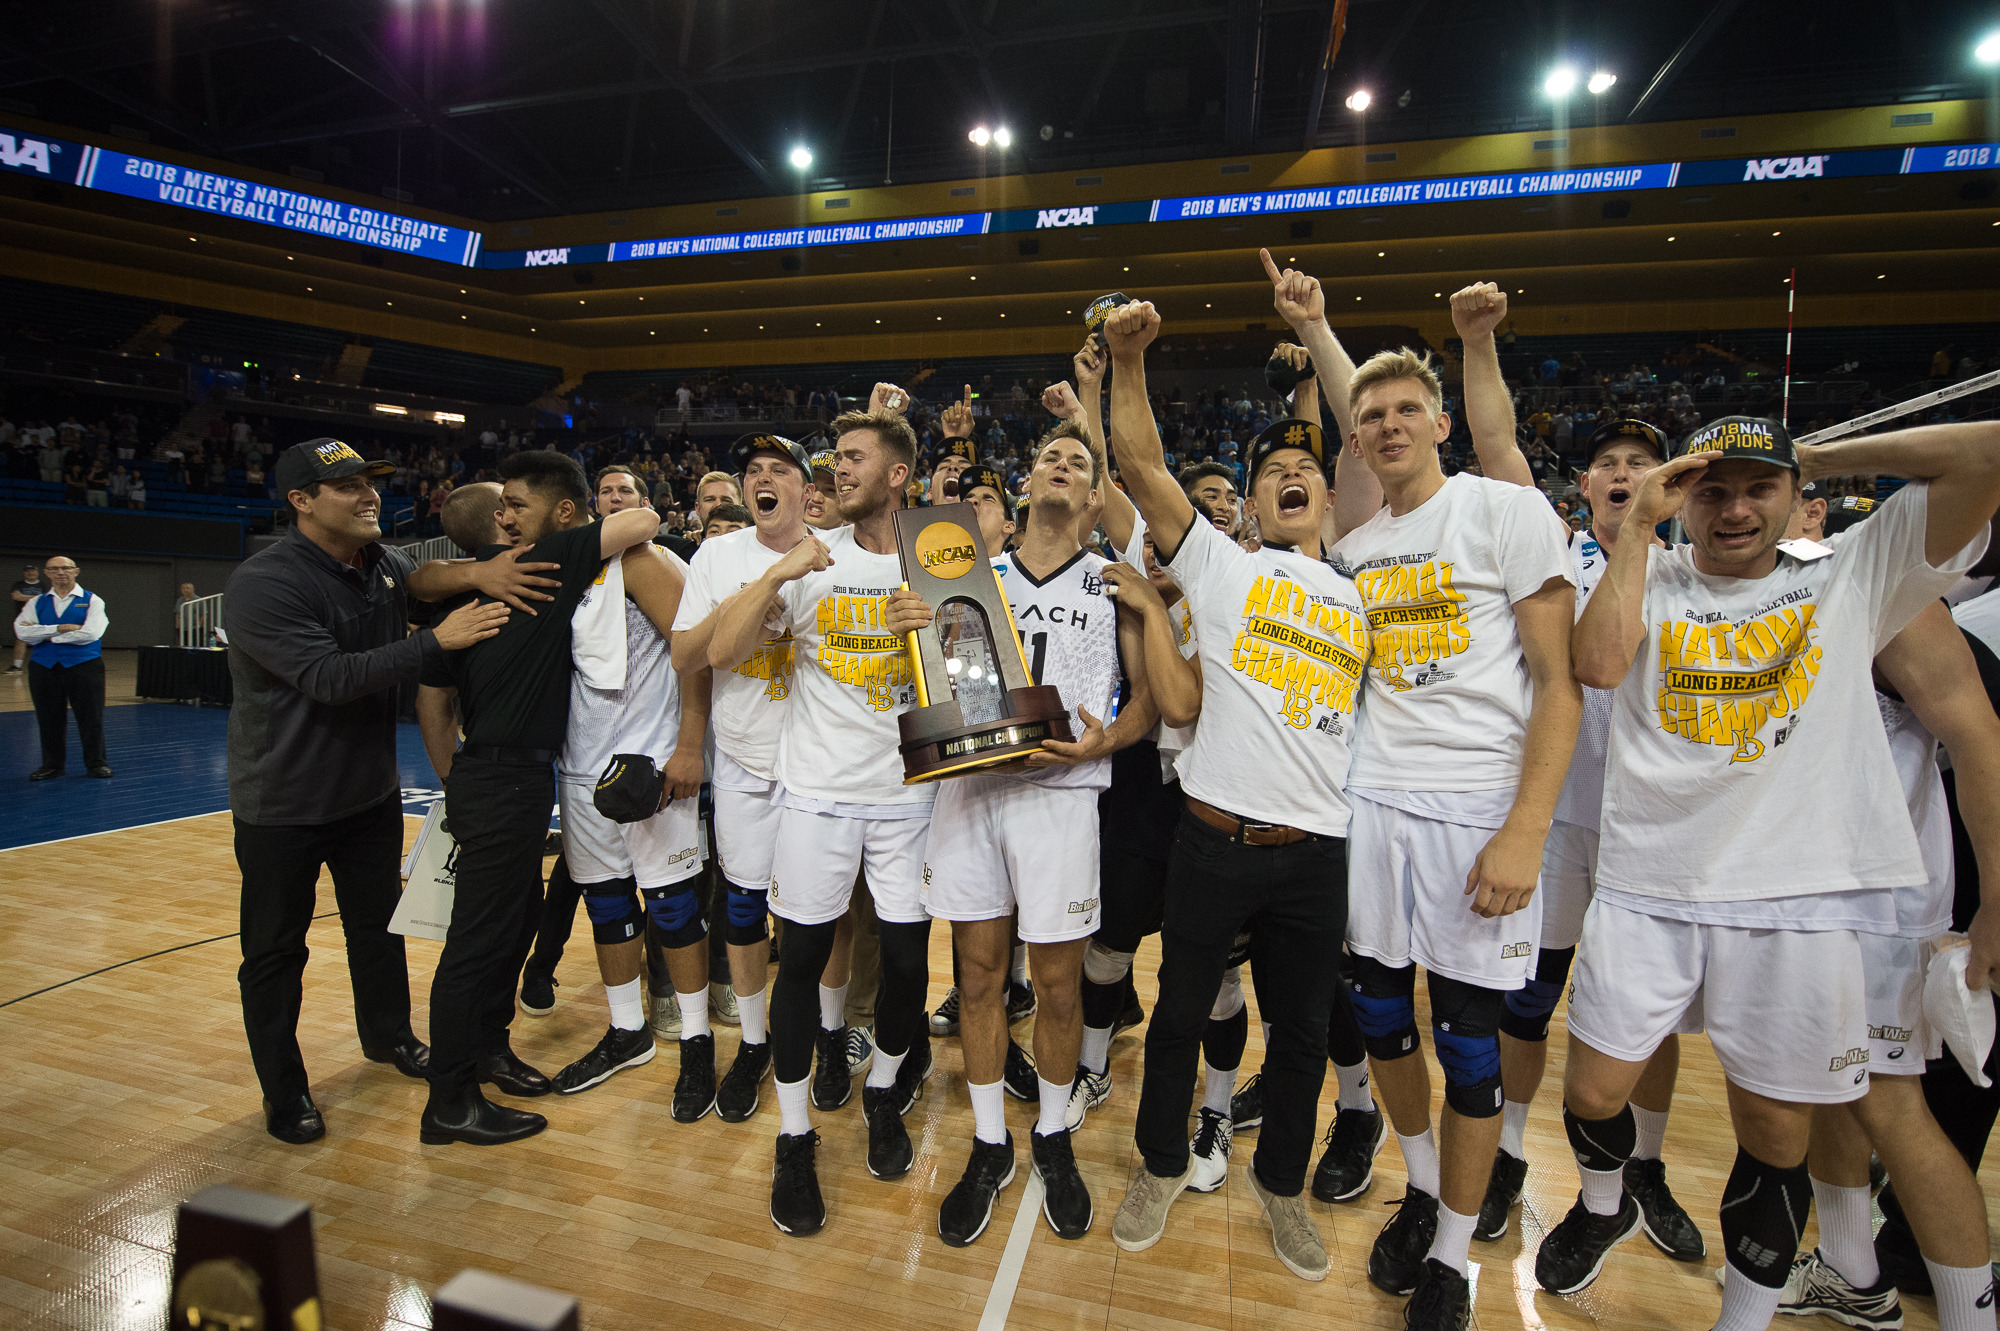 National Champion Men S Volleyball Team To Be Recognized Saturday At Dirtbags Game Long Beach State University Athletics